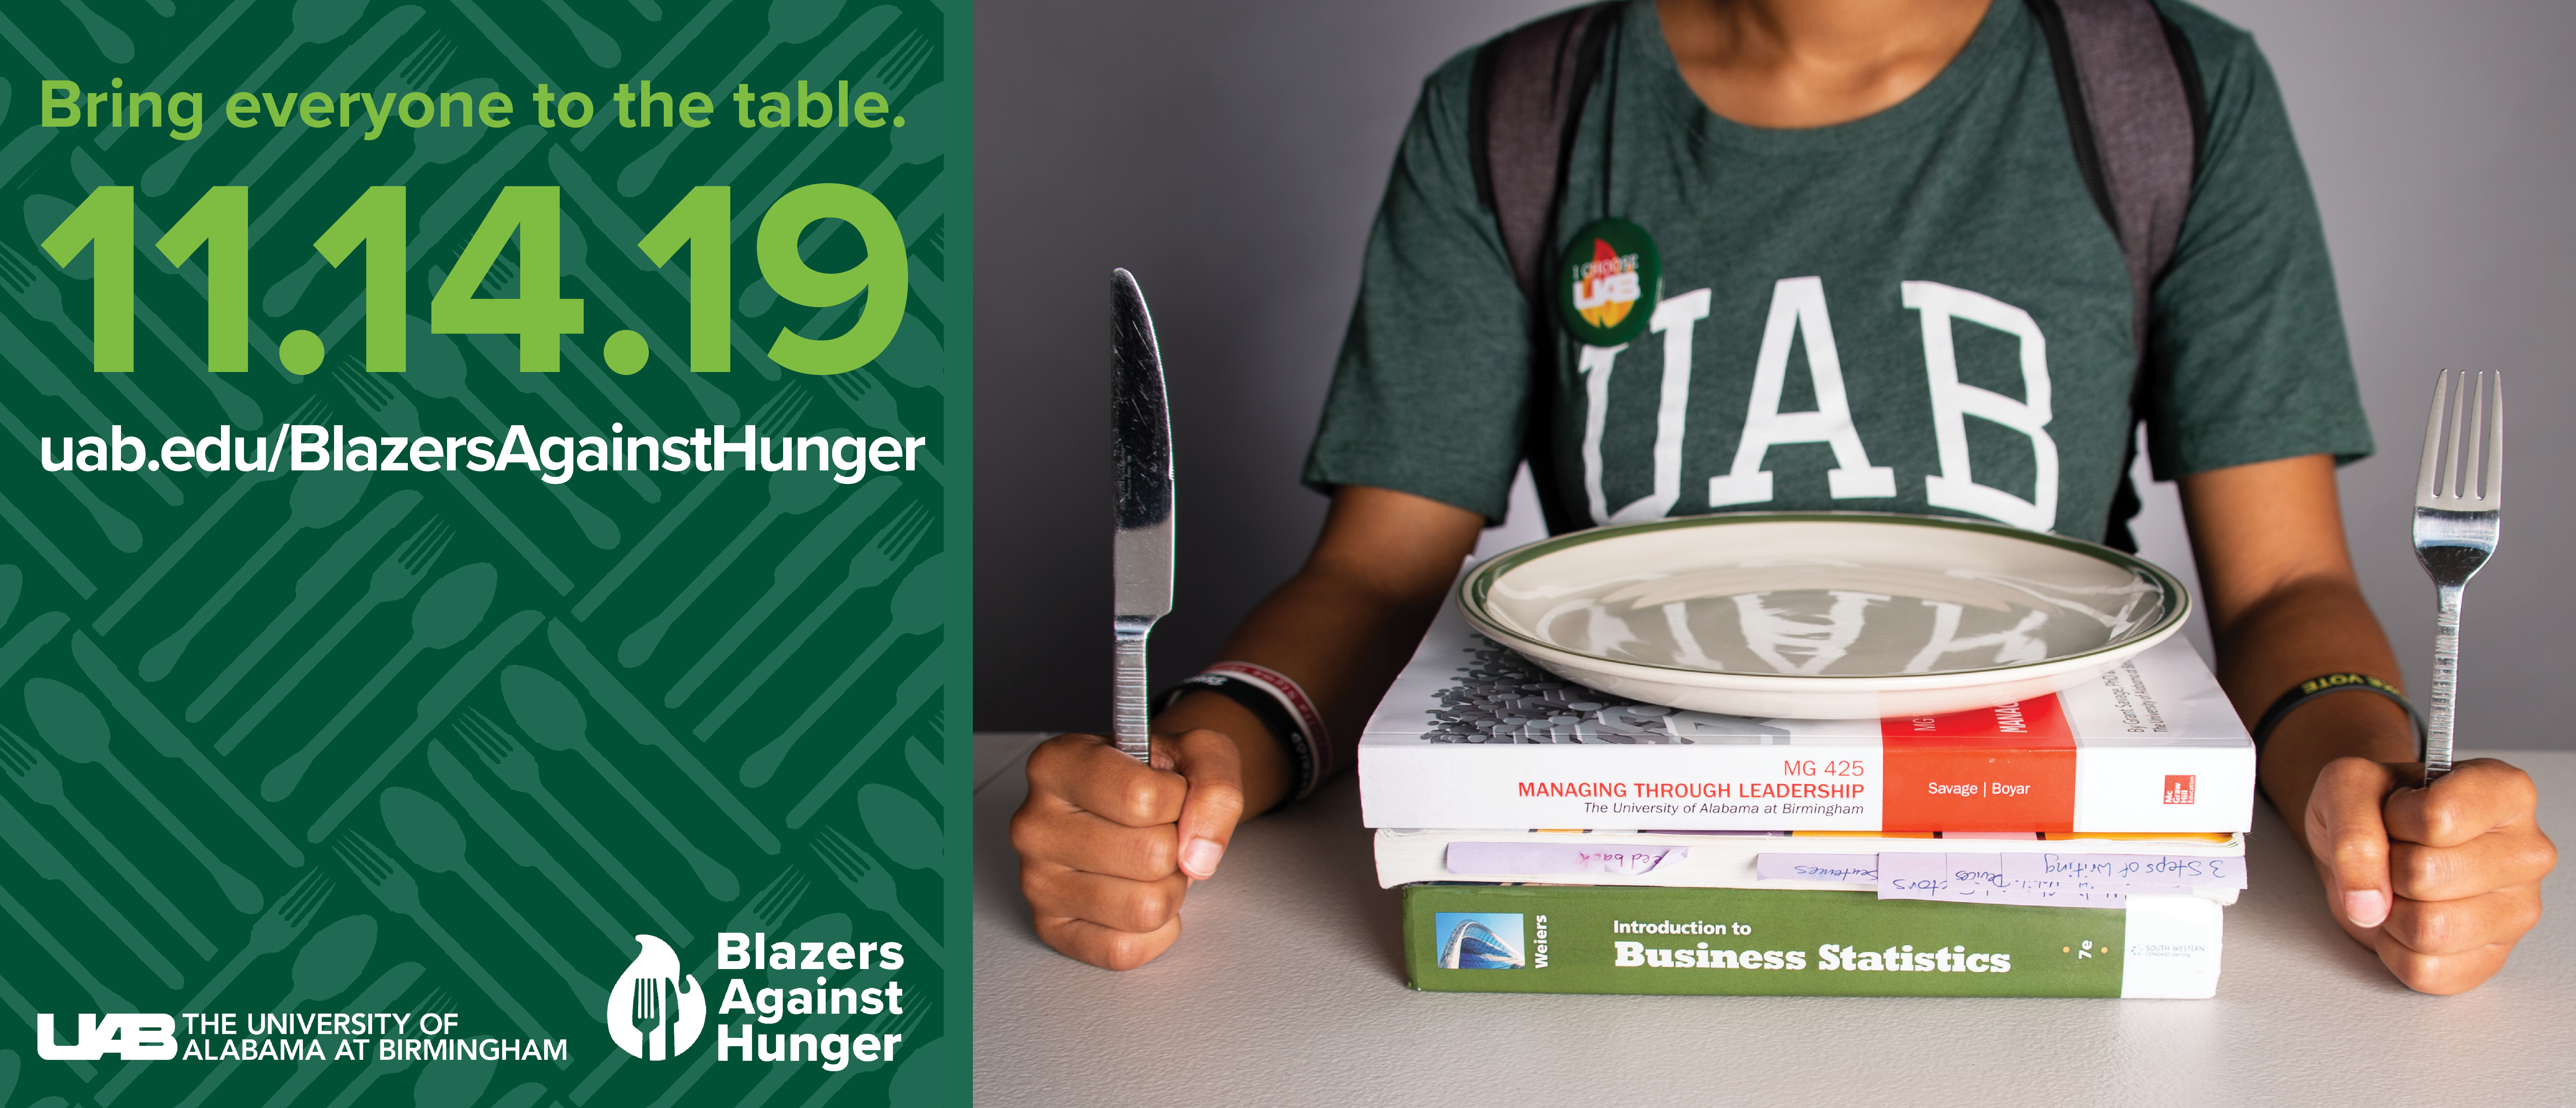 Bring everyone to the table. Blazers Against Hunger